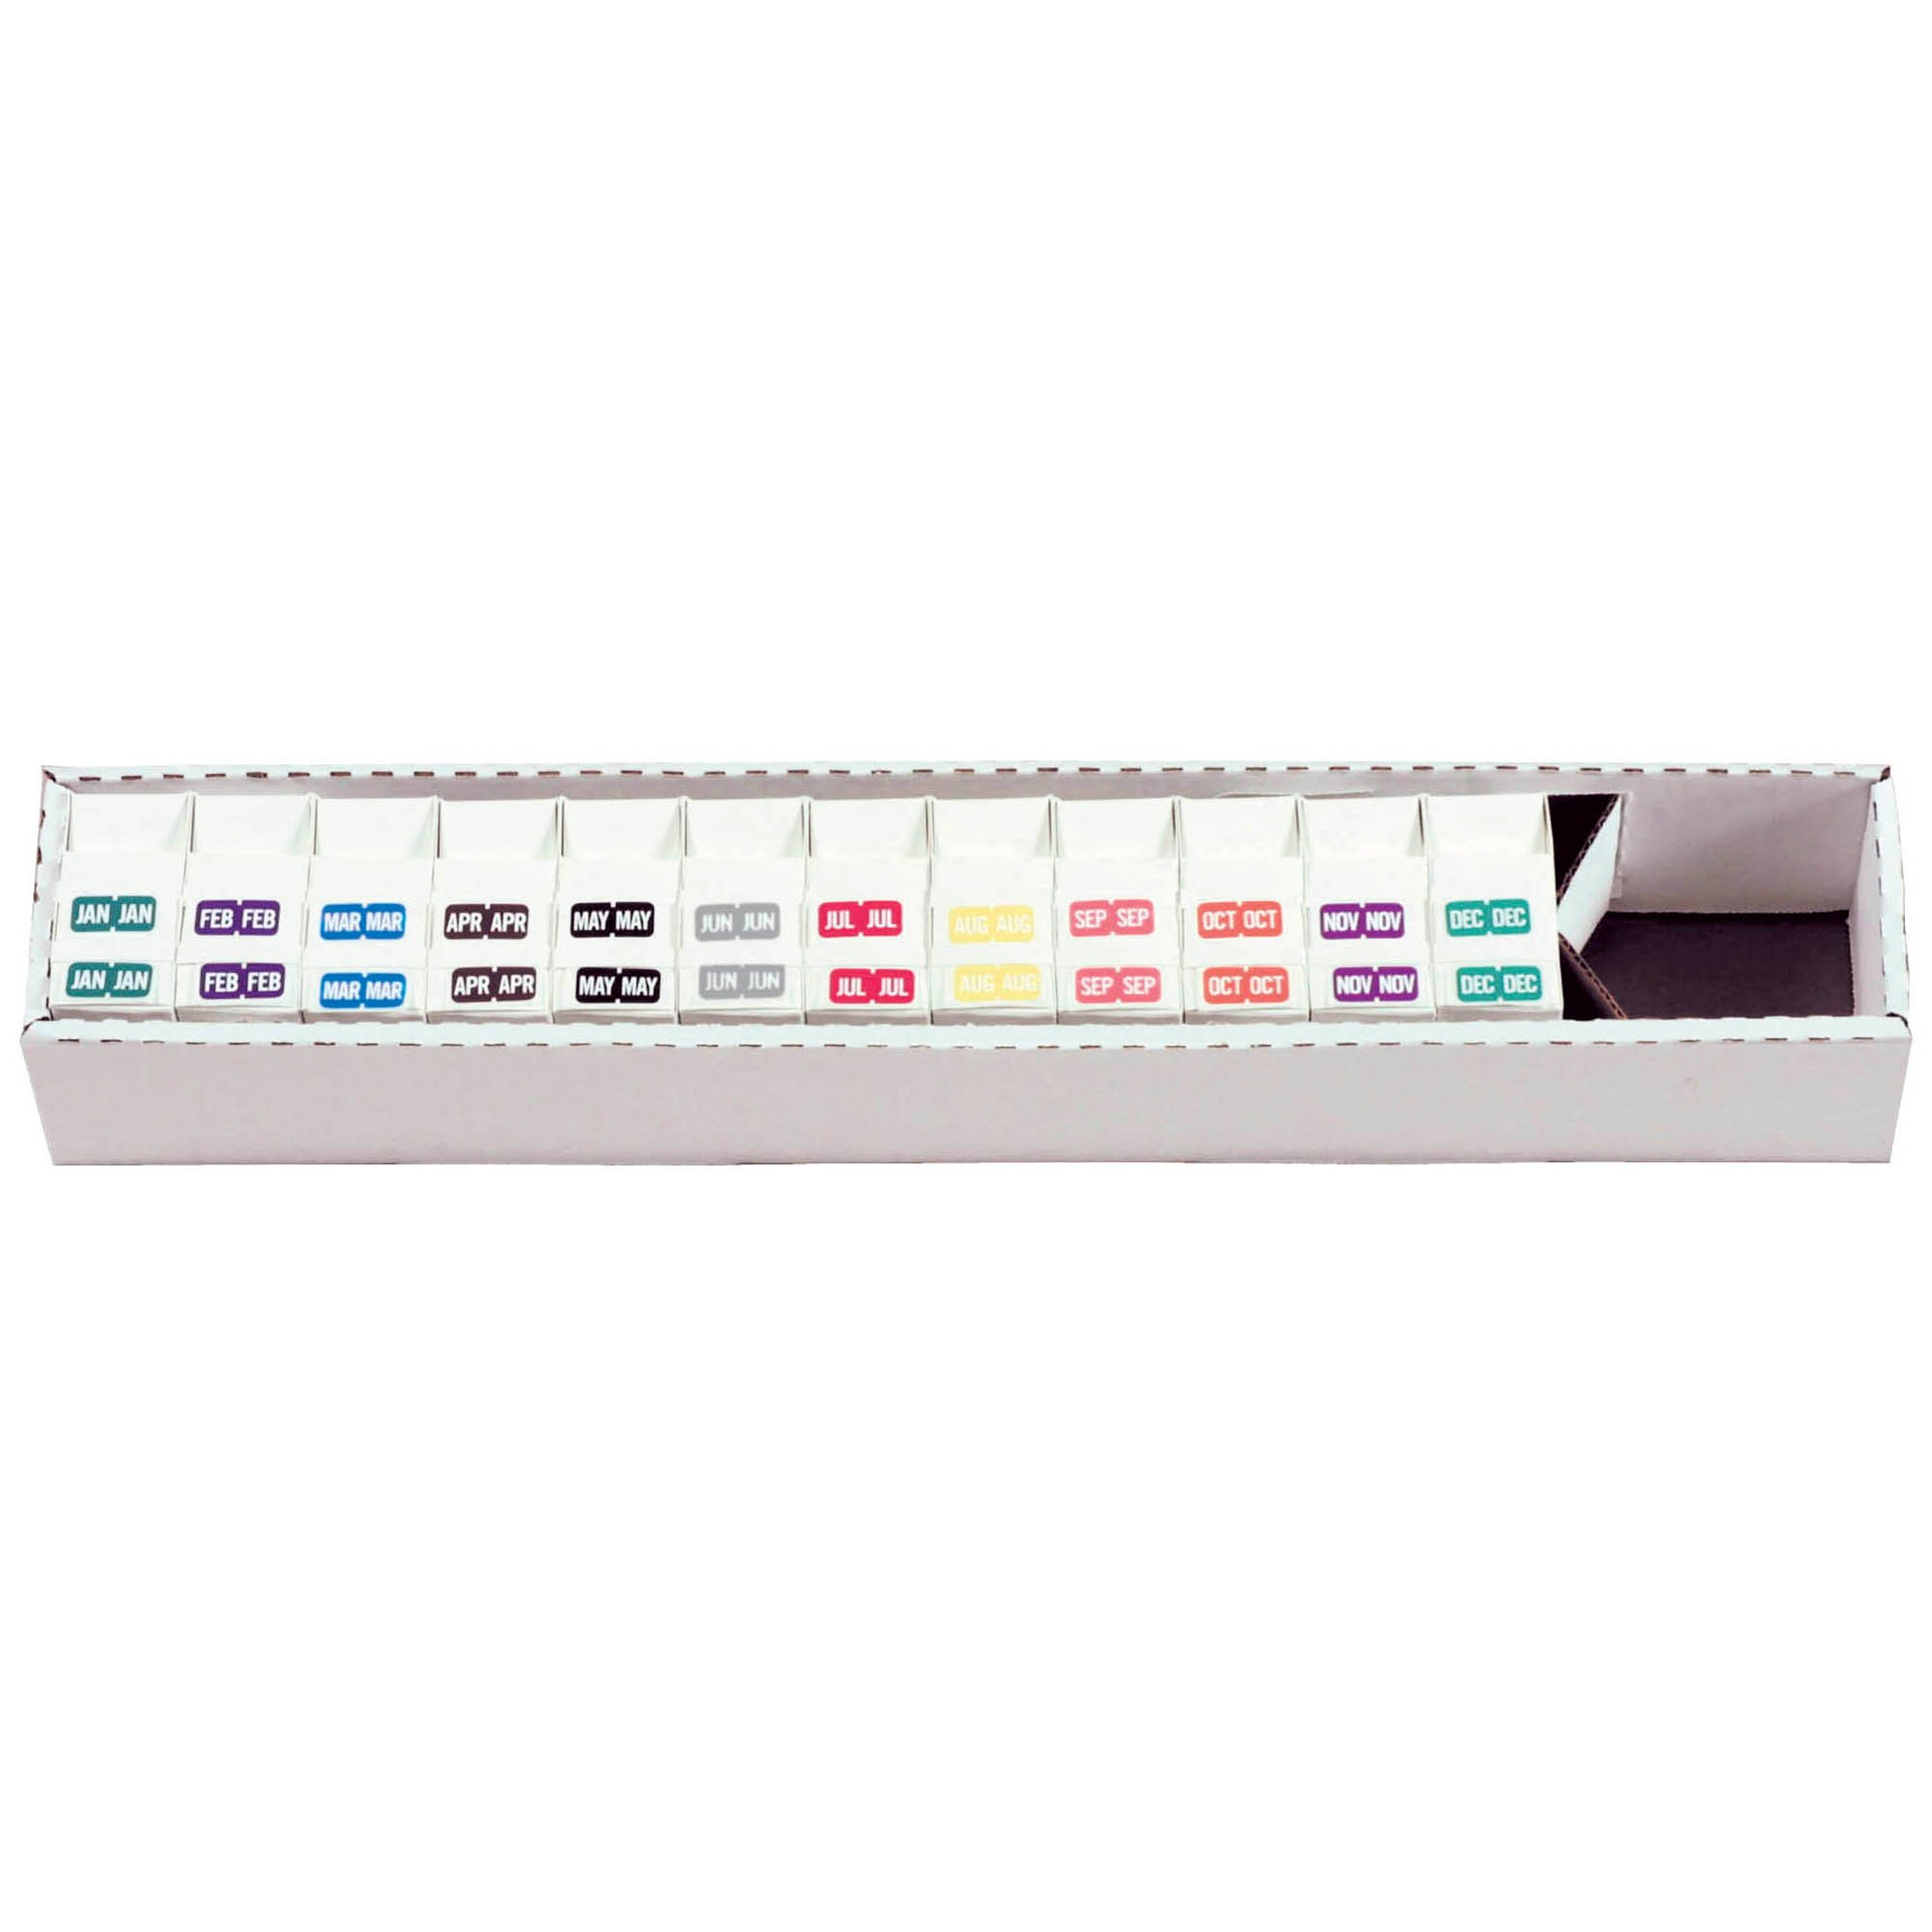 Tab Products 1279 Match A1279 Series Month Code Roll Labels - Set of Jan to Dec